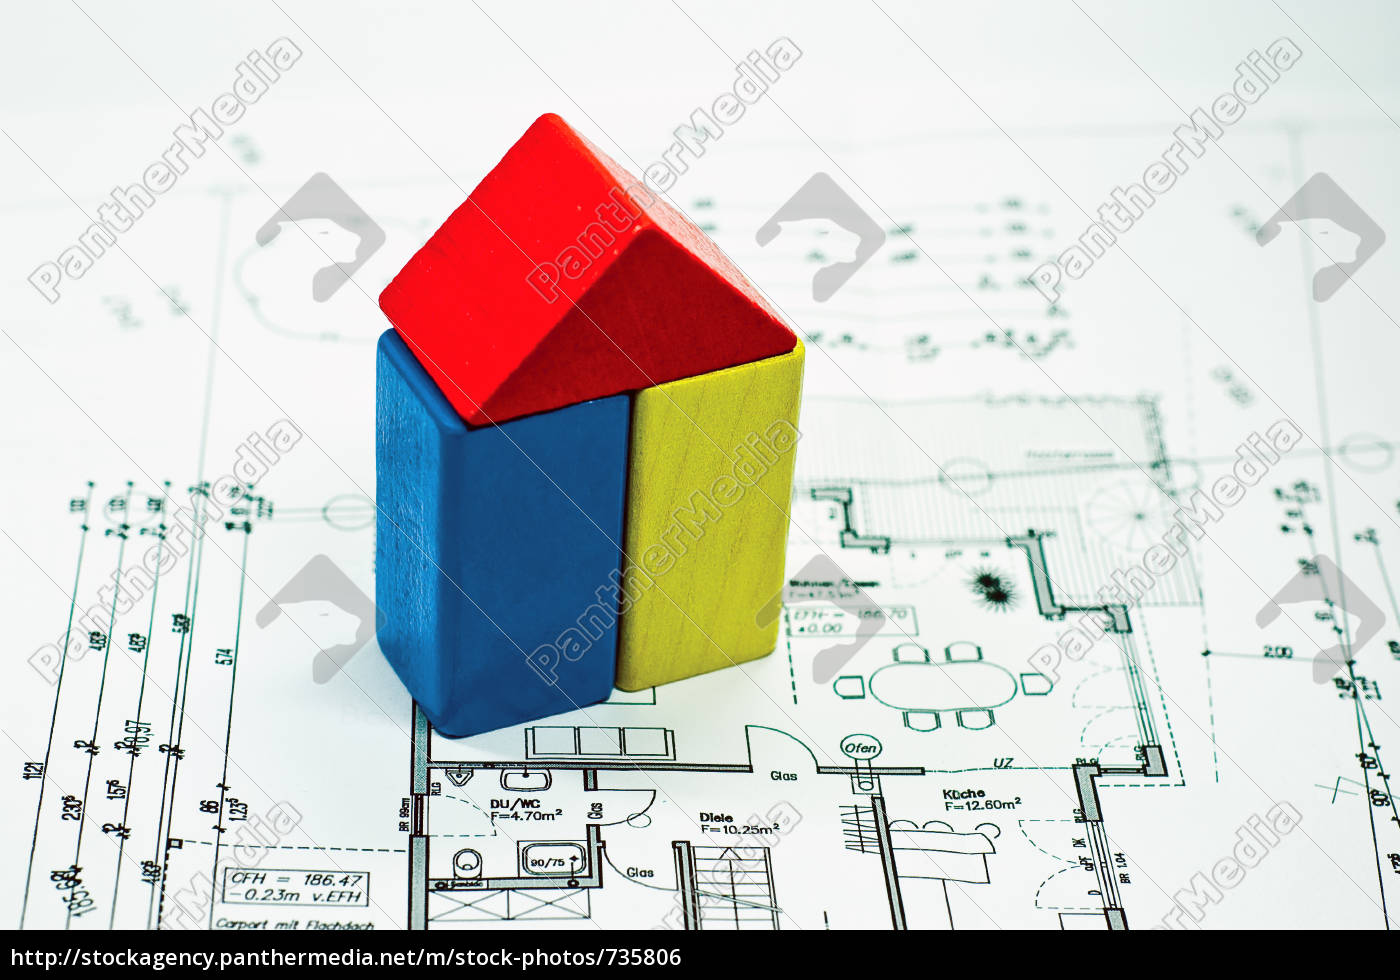 house, building - 735806